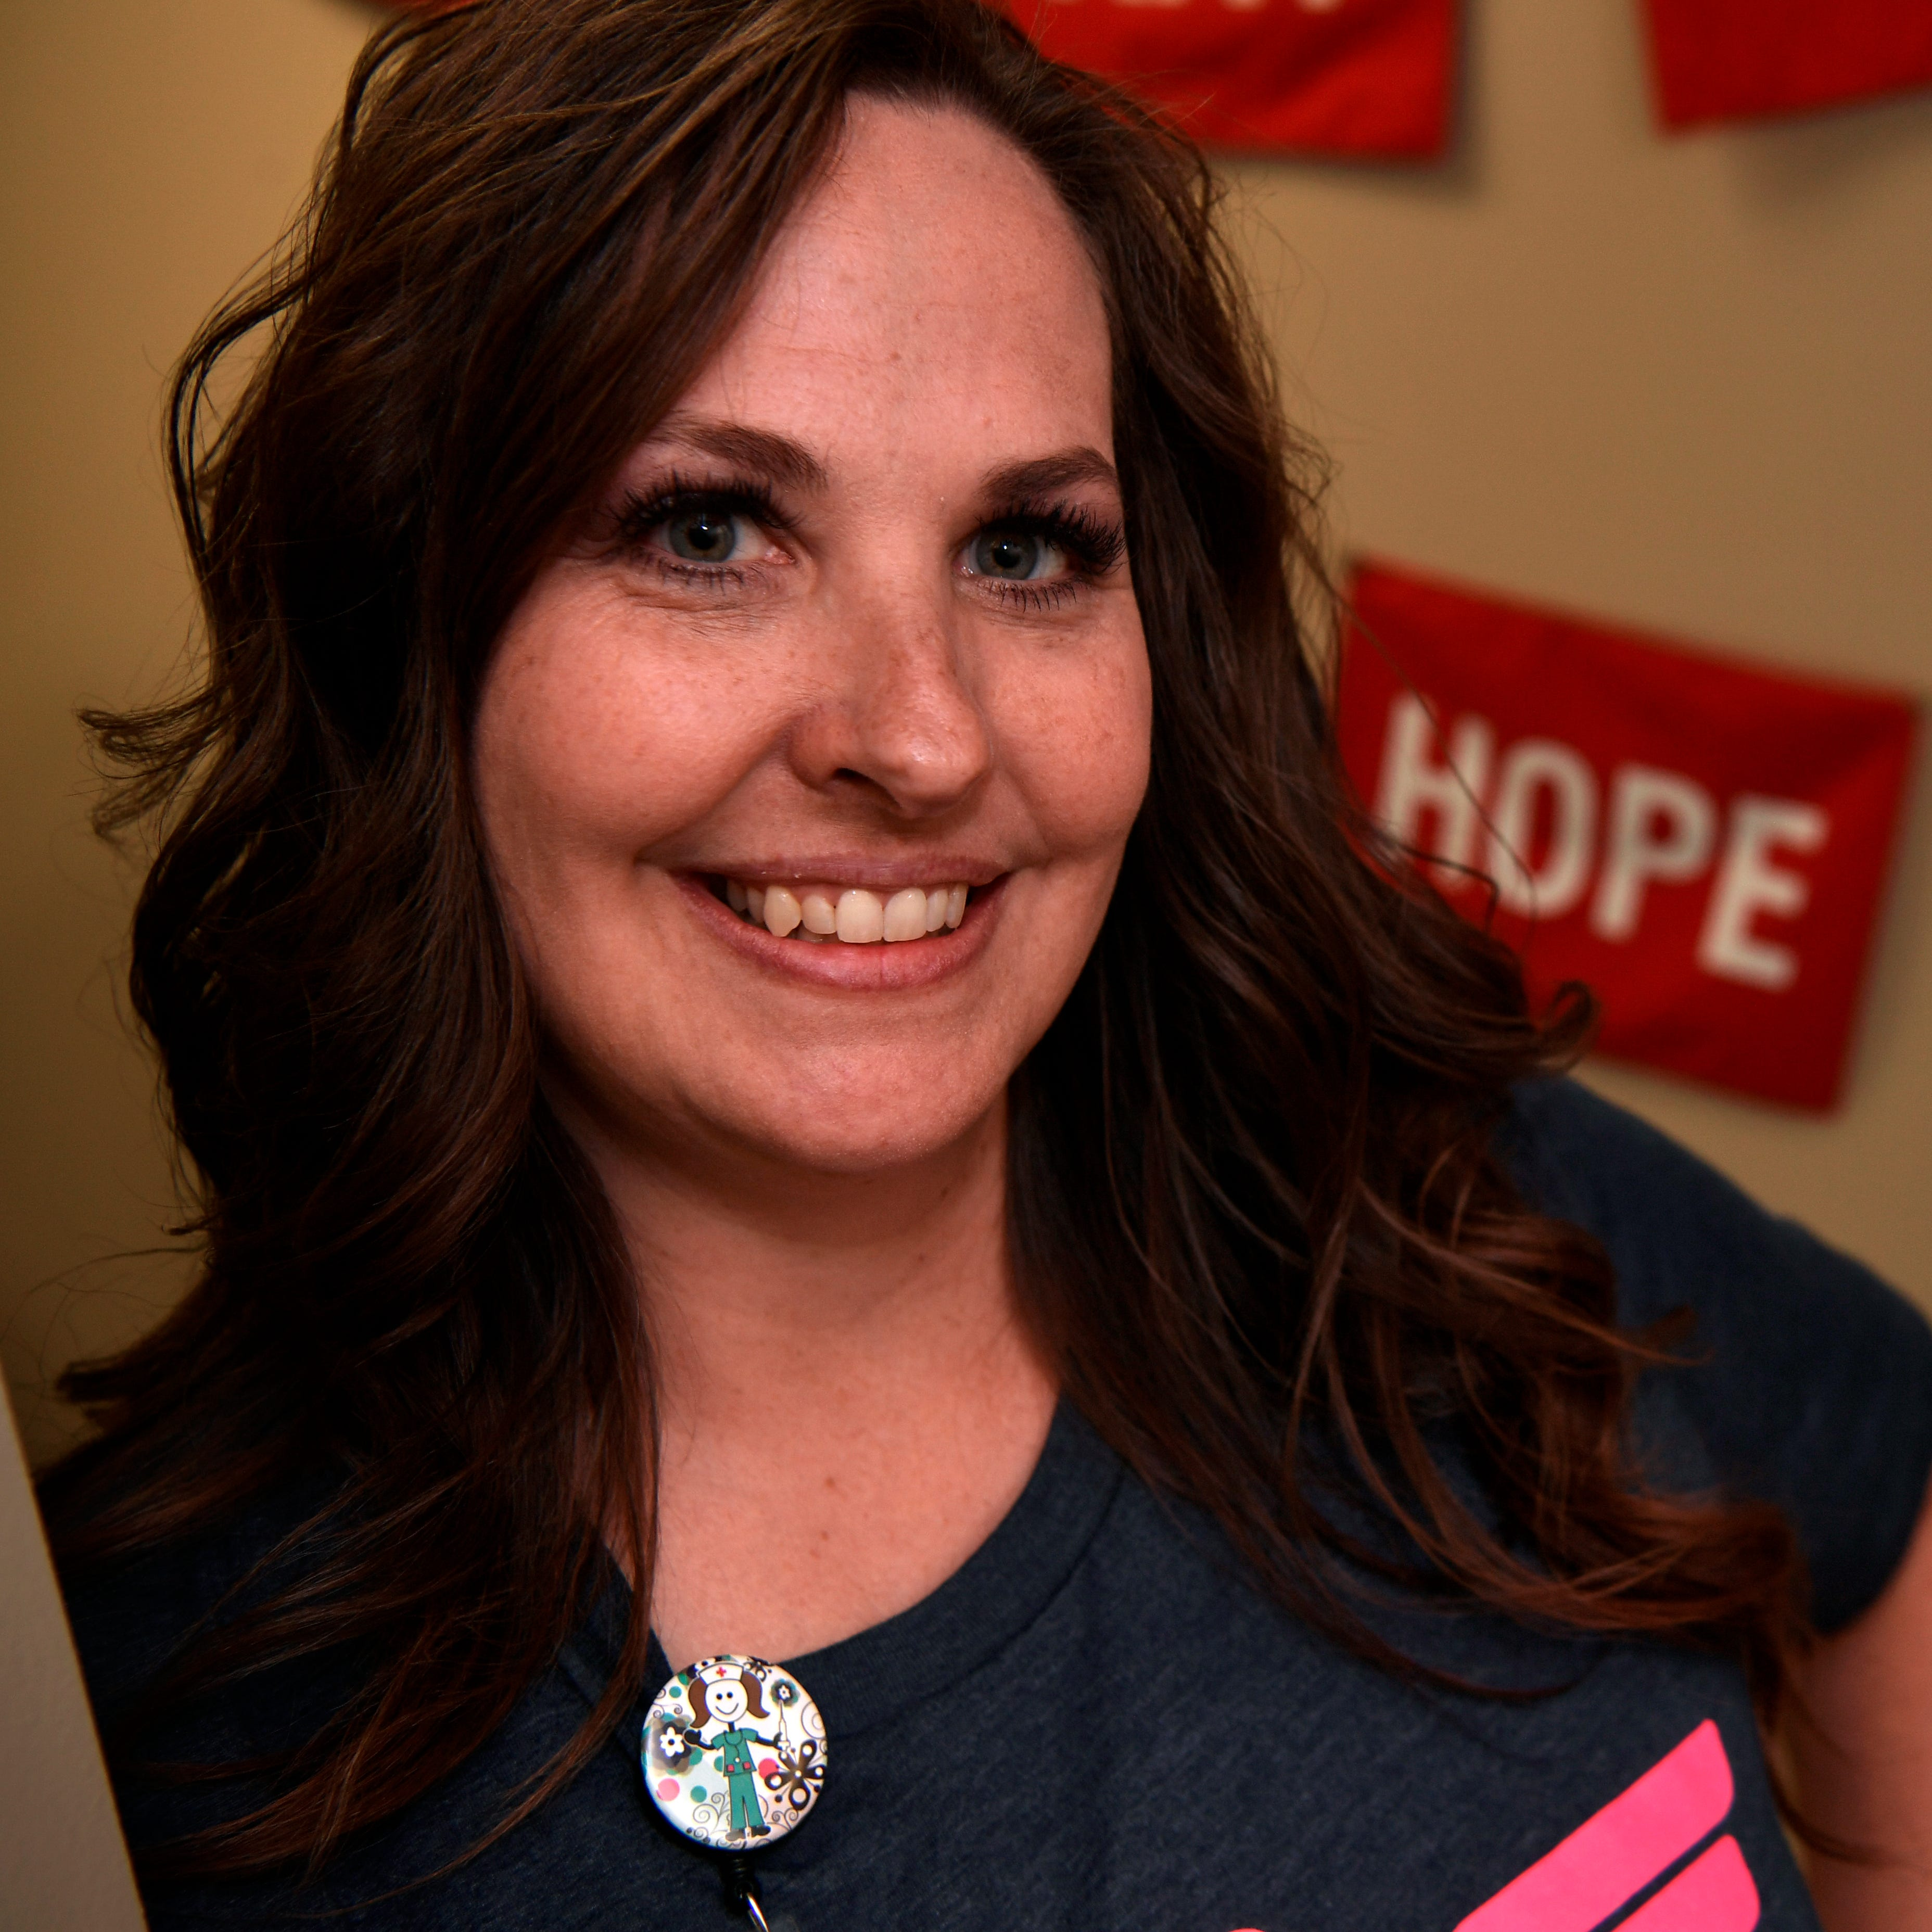 Abilene nurse learns breast cancer can strike even those with no risk factors